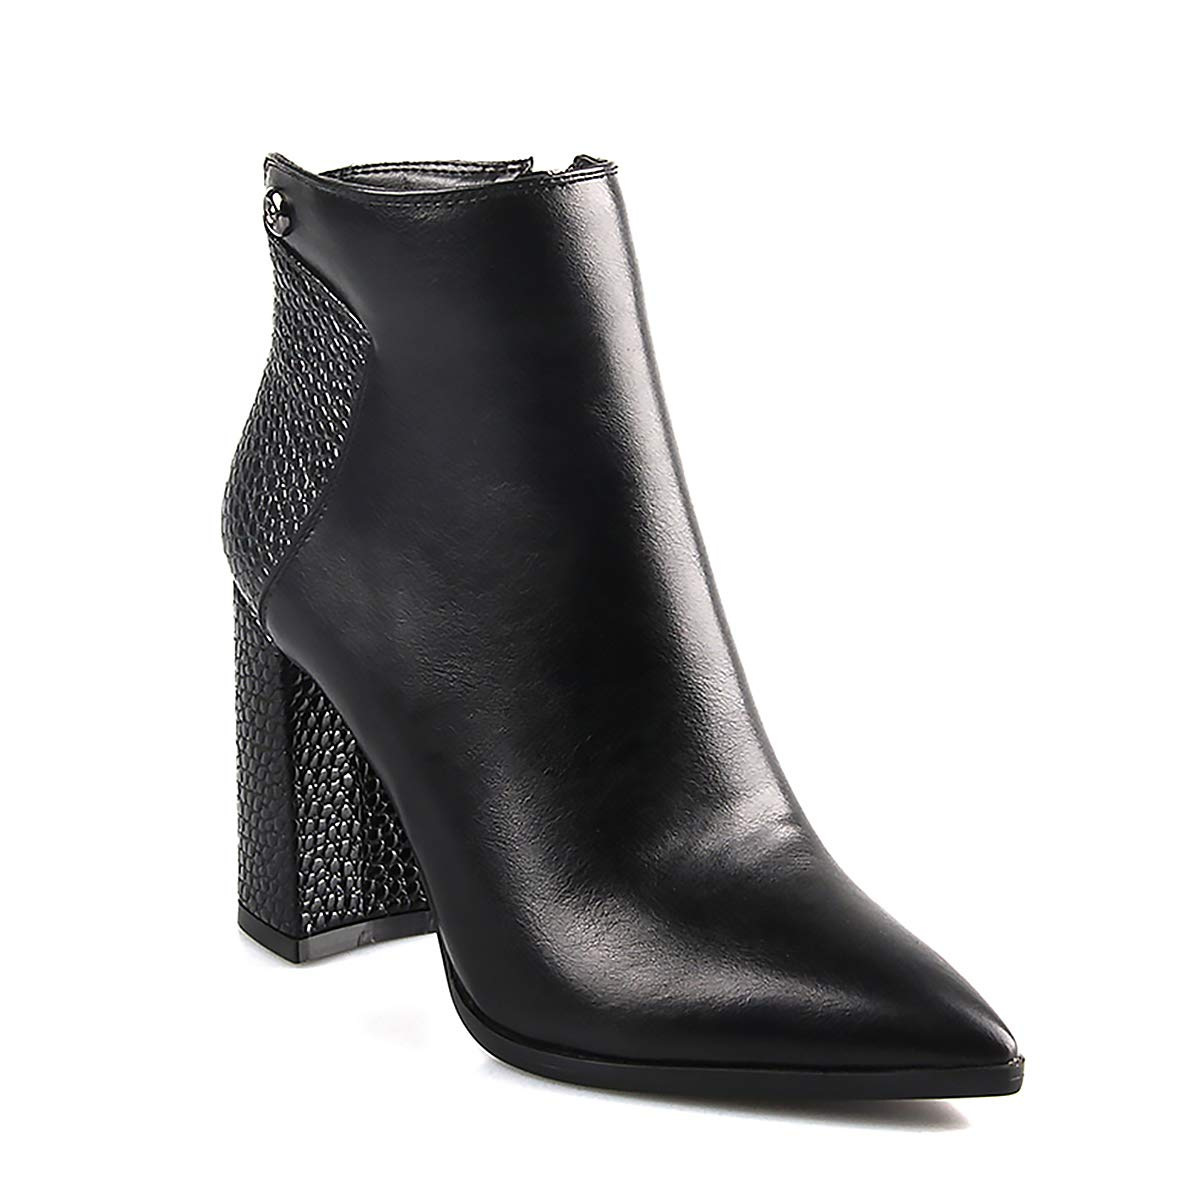 bd5fce0255c5 Amazon.com  perixir Chelsea Ankle Boots for Women Black Crocodile Embossed  Patchwork Combat Booties High Heel Pointed Toe Chunky Square Heel Classic  with ...